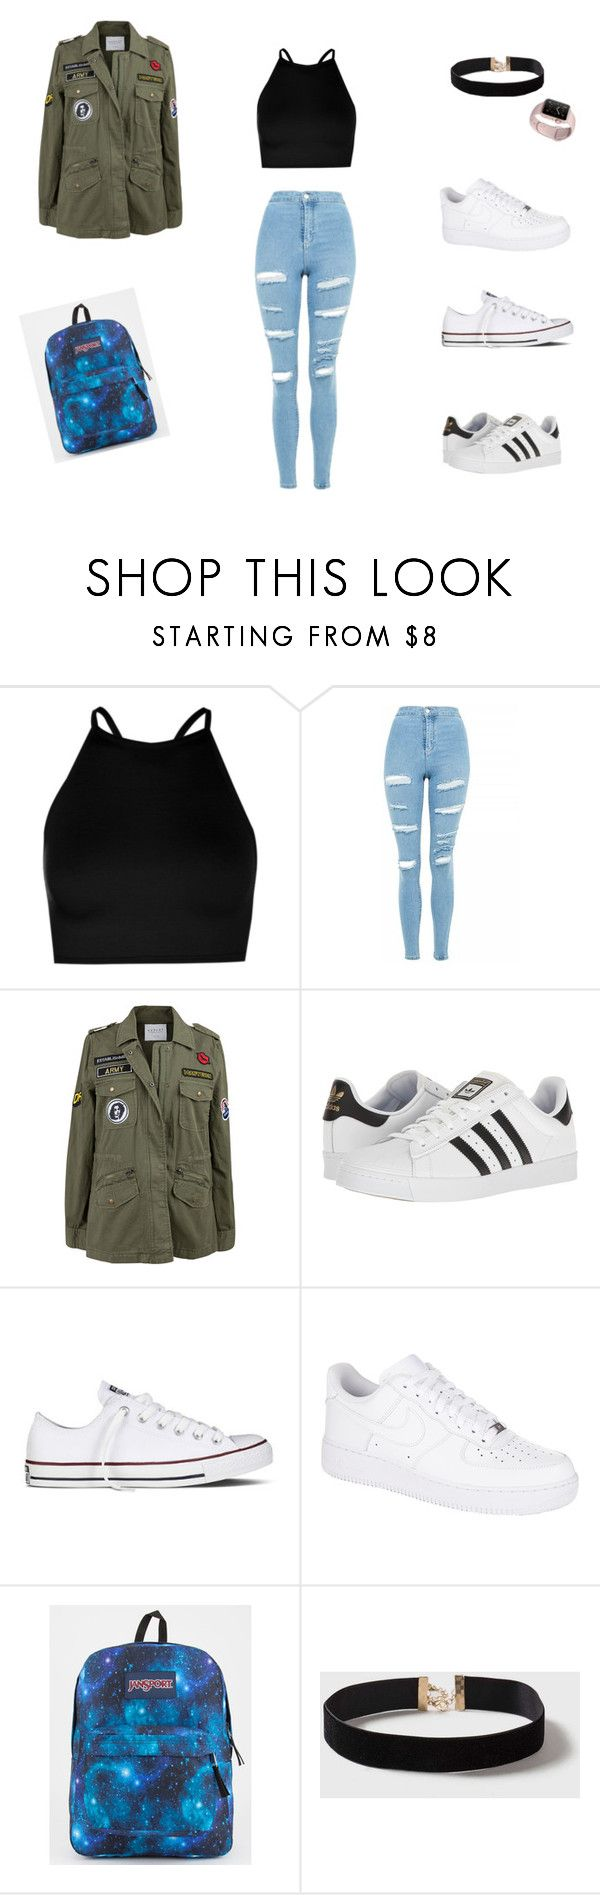 """""""Outfit for school"""" by sheilahudsonx on Polyvore featuring Boohoo, Topshop, Velvet by Graham & Spencer, adidas, Converse, NIKE, JanSport and Dorothy Perkins"""